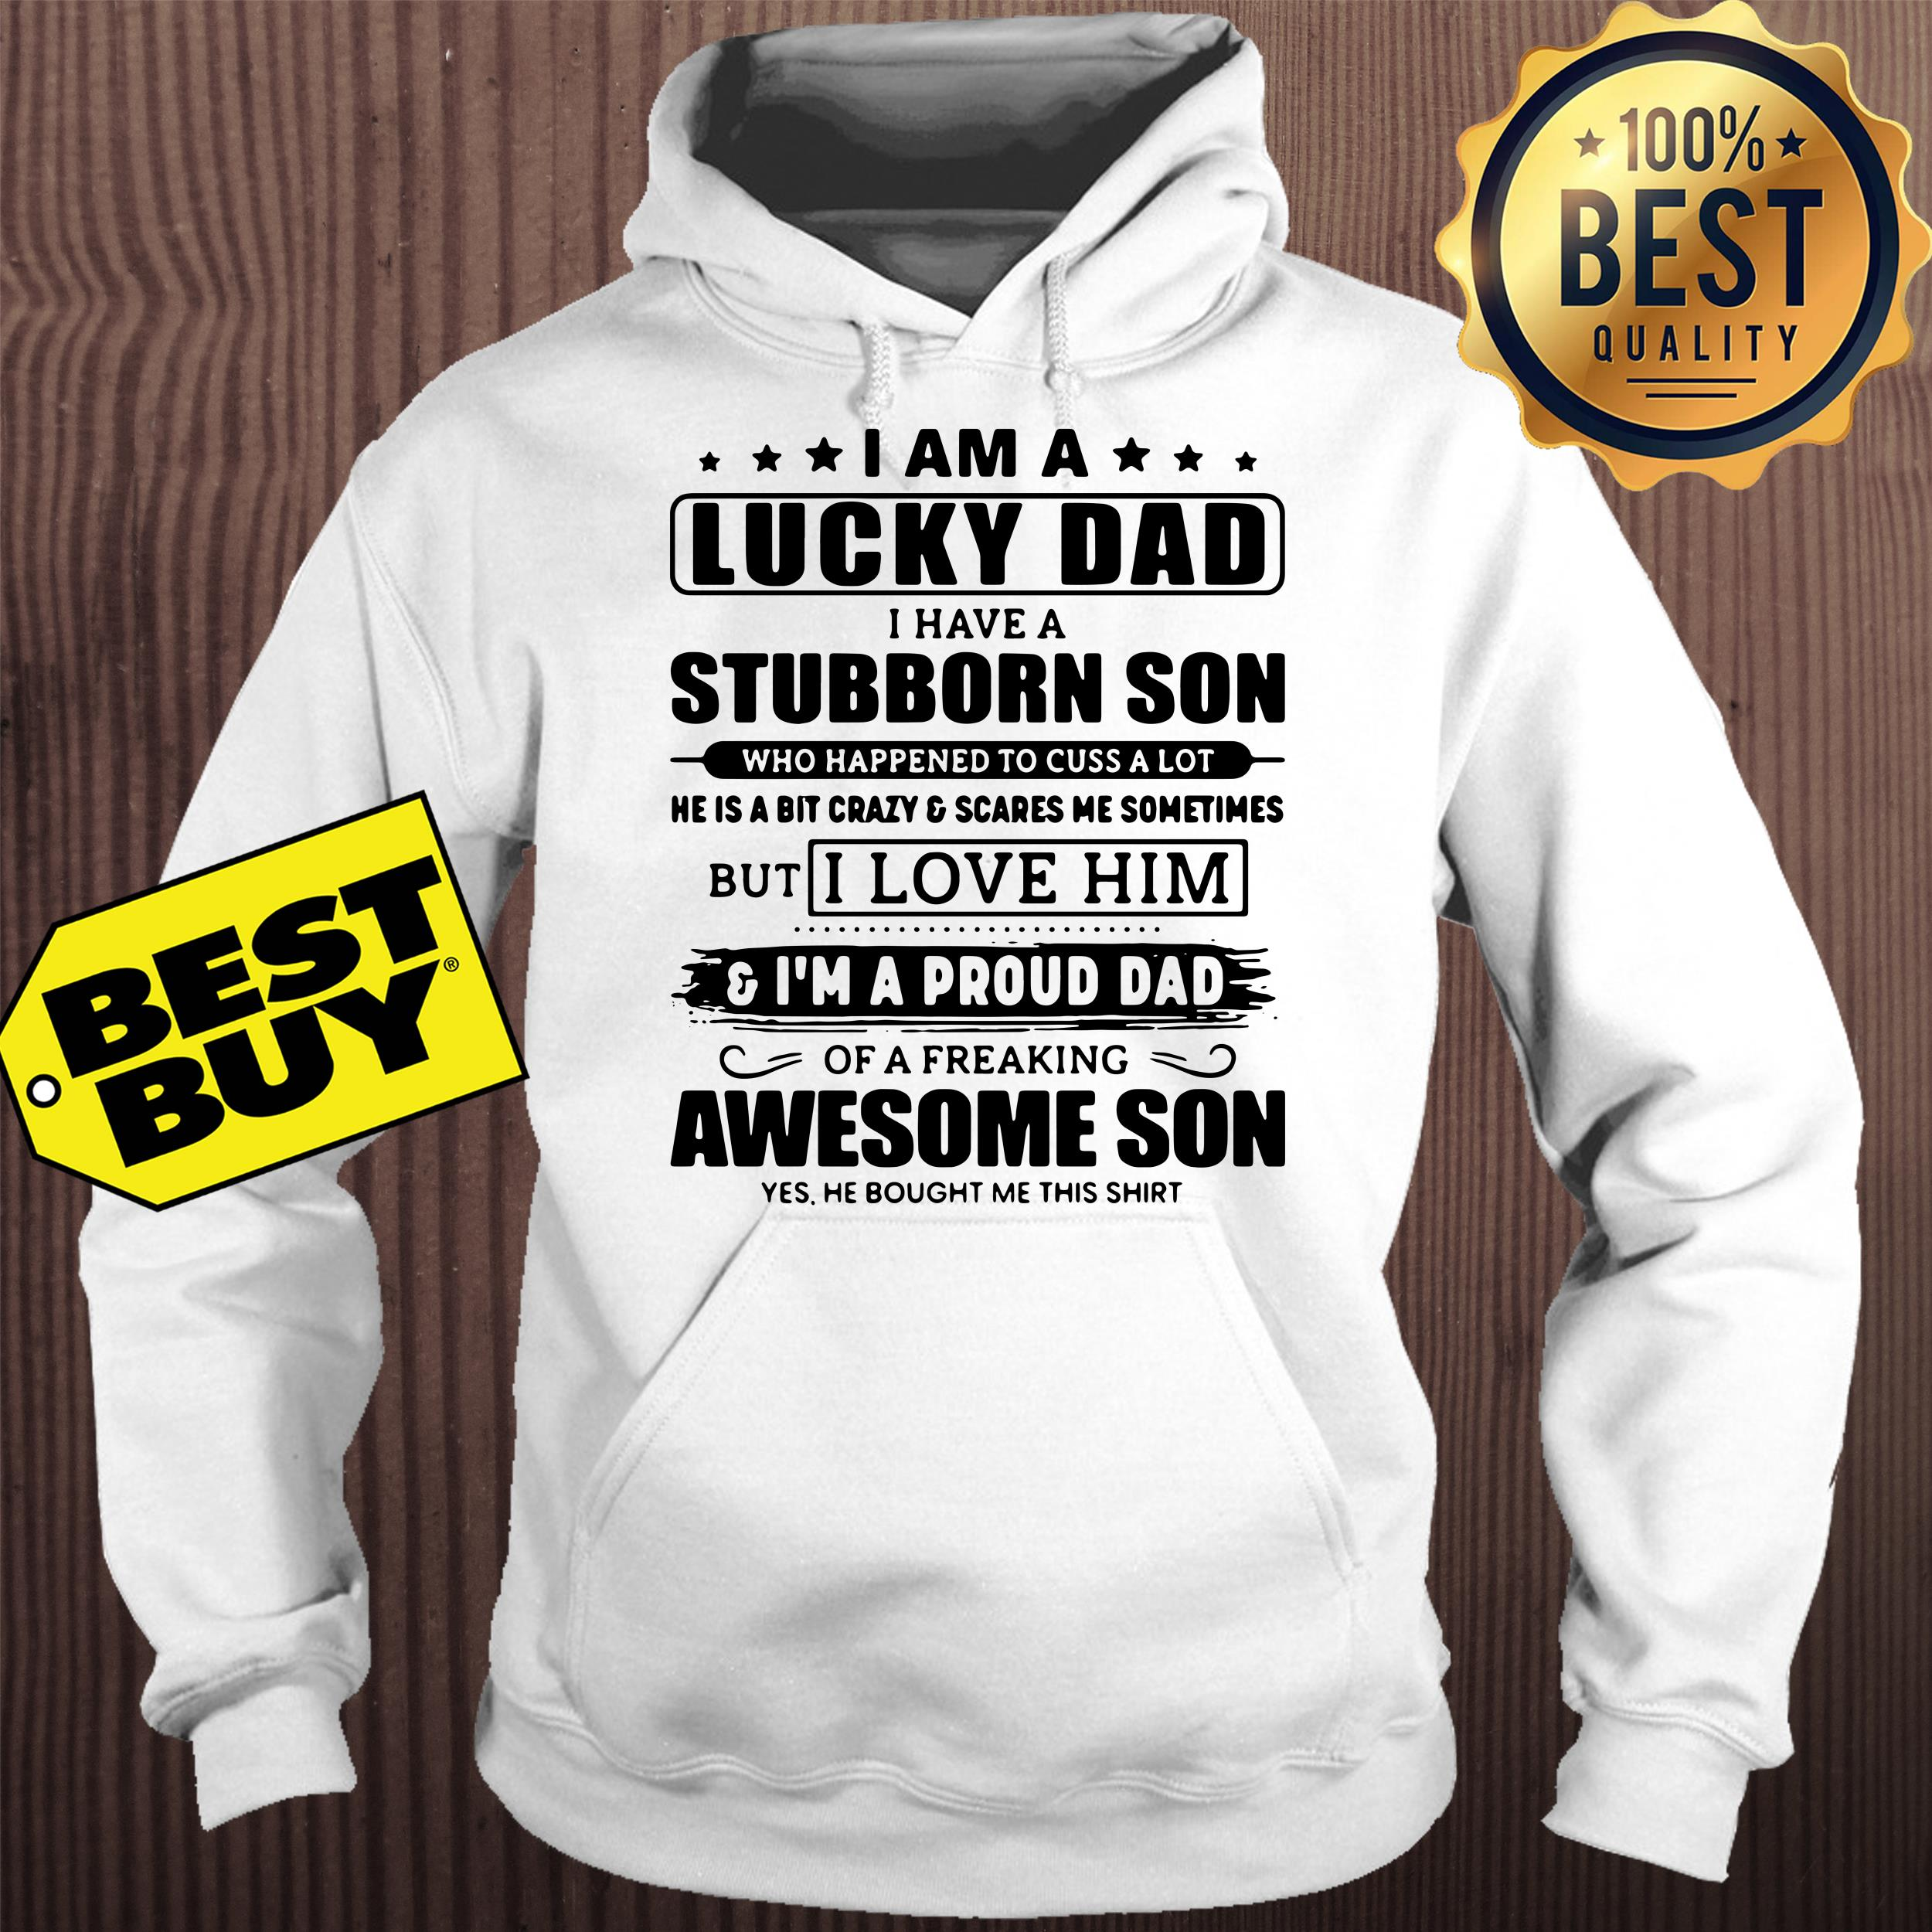 I Am A Lucky Dad I Have A Stubborn Son hoodie